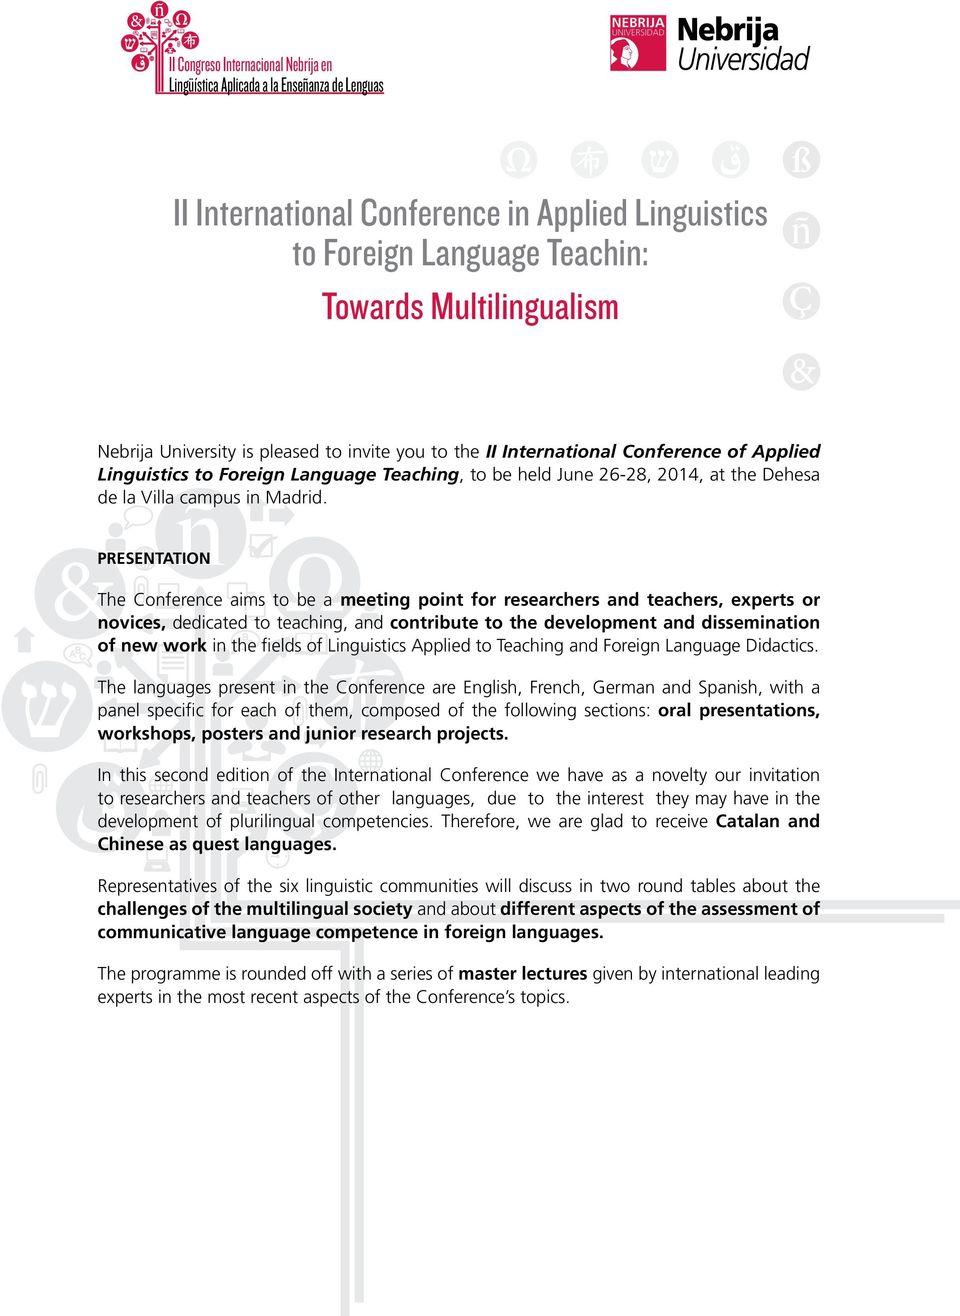 presentation The Conference aims to be a meeting point for researchers and teachers, experts or novices, dedicated to teaching, and contribute to the development and dissemination of new work in the